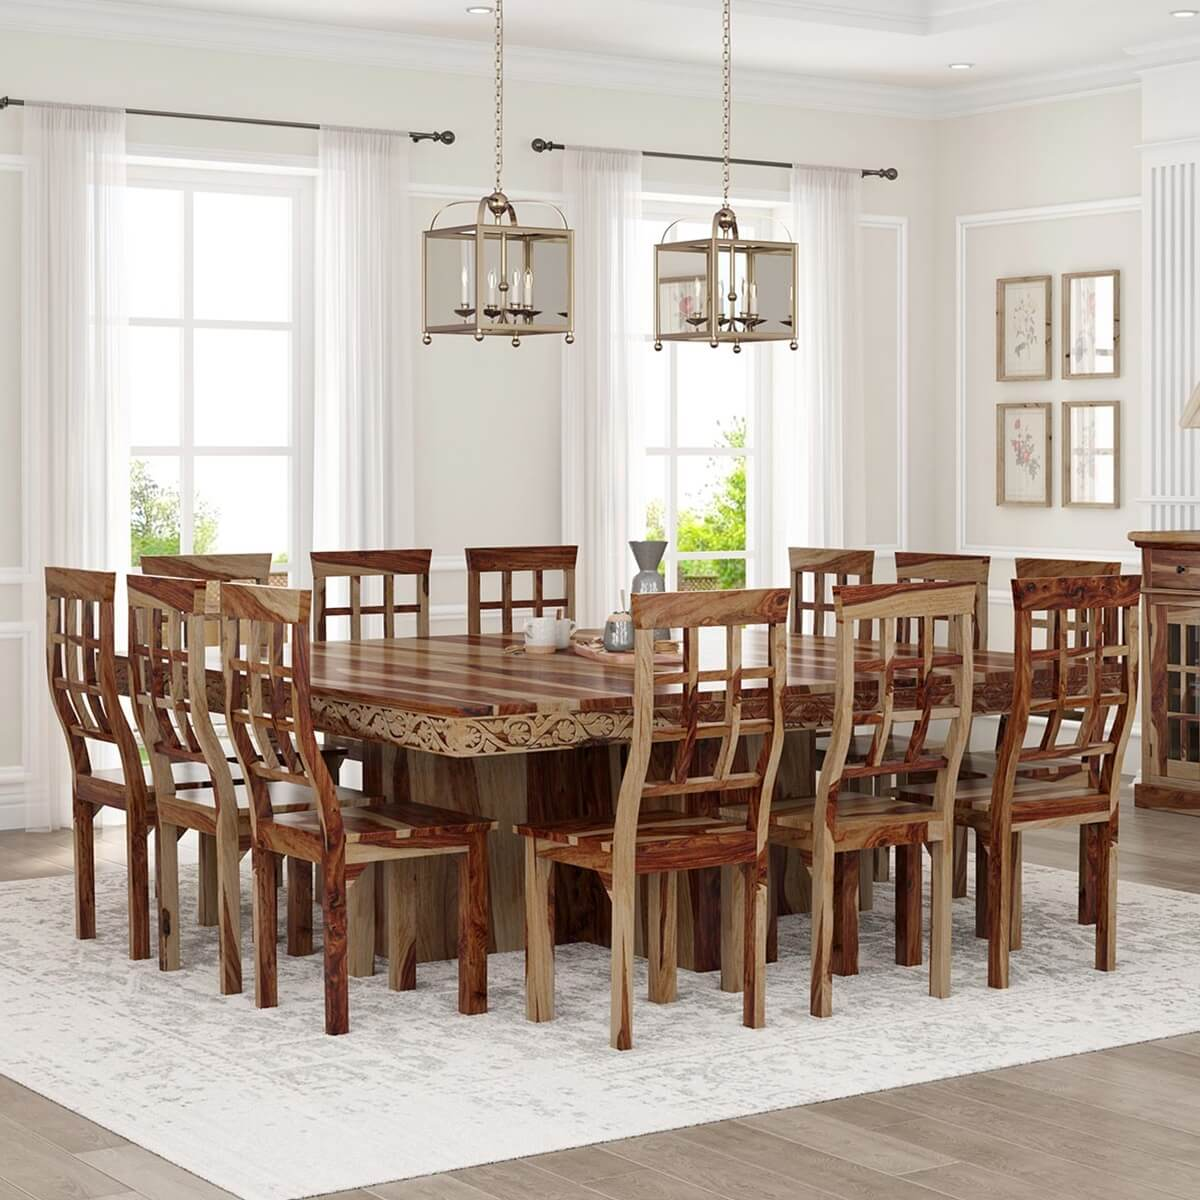 Dallas Ranch Large Square Dining Room Table And Chair Set